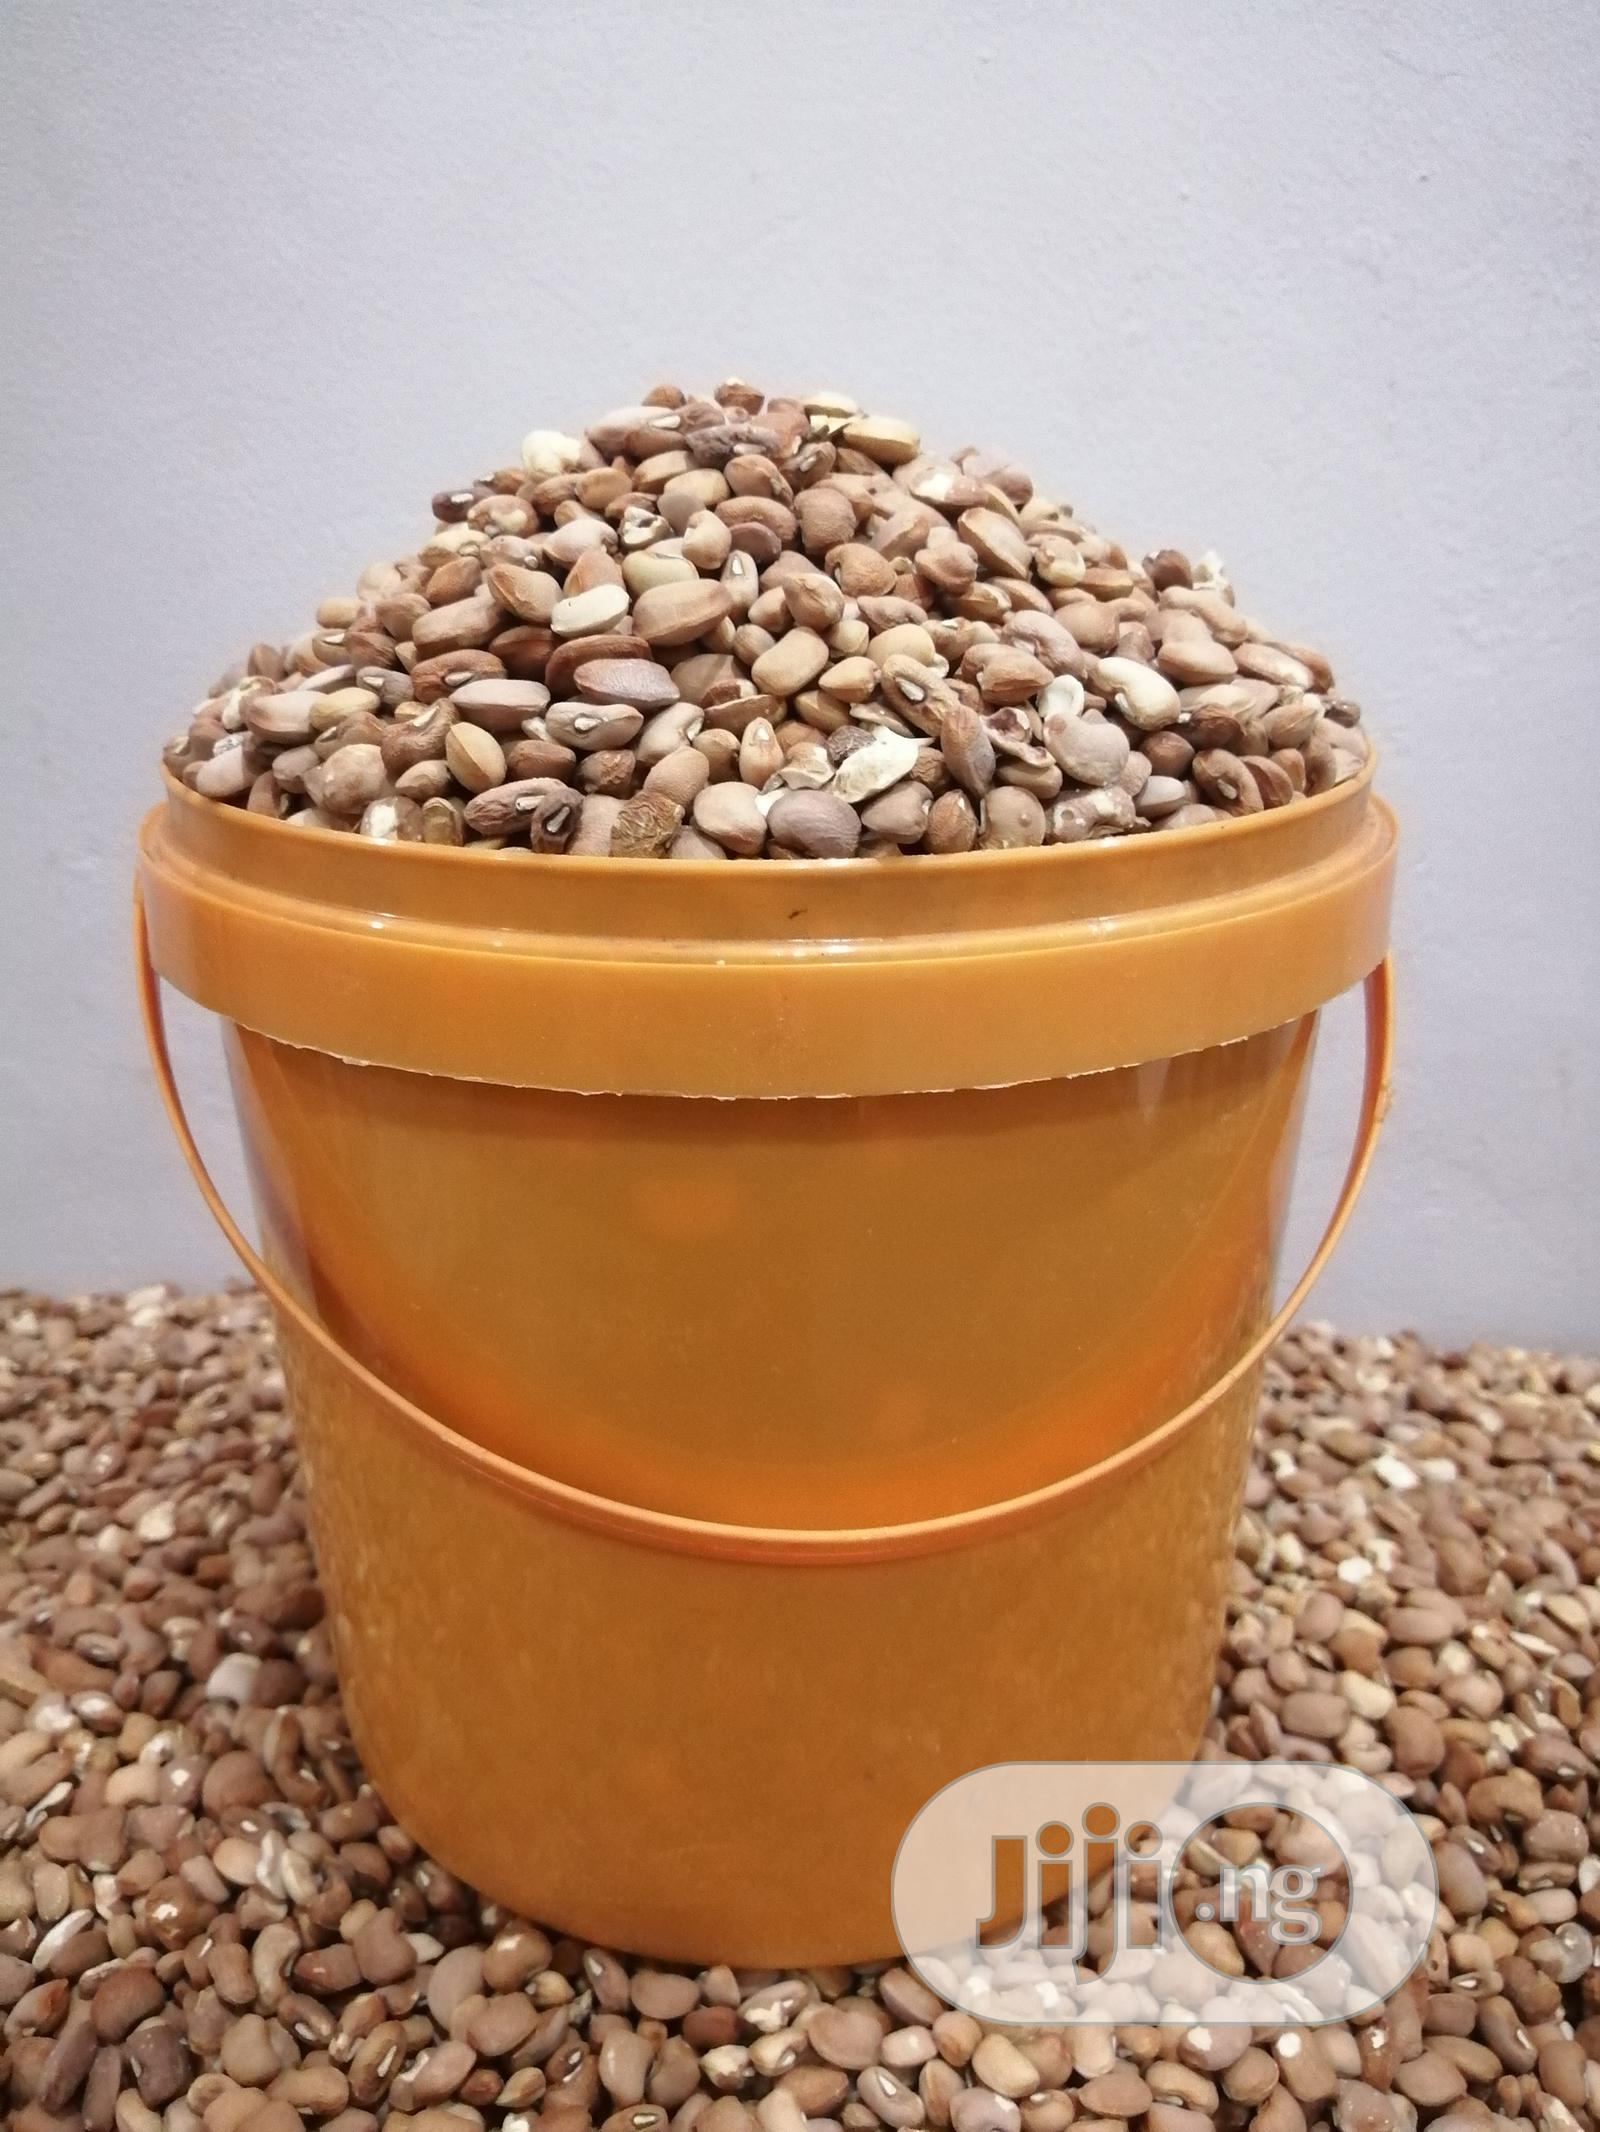 Archive: 25kg Bags of Beans (7 Custard Buckets) Brown, Butter White